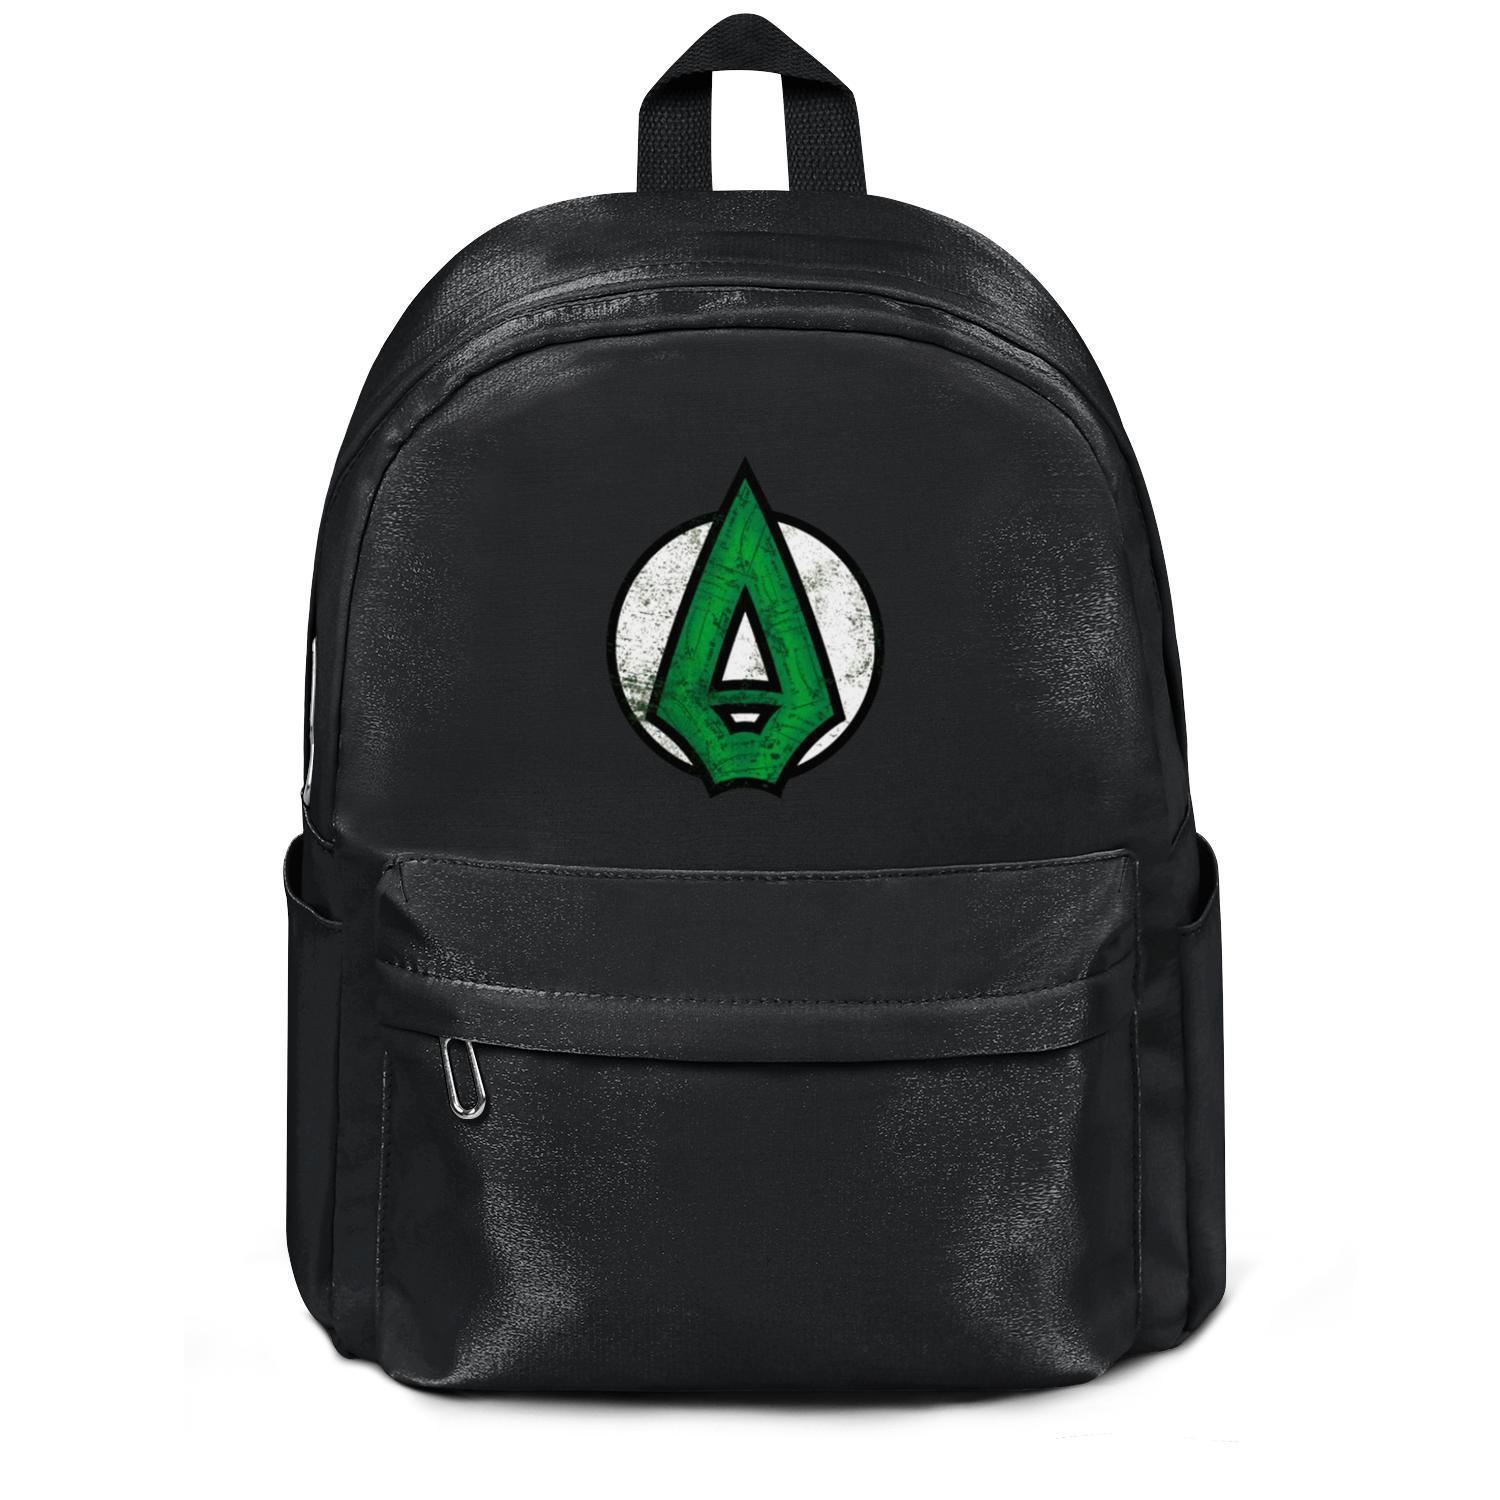 Package,backpack Green Arrow Logo retro DC Comics black cool vintagepackage adjustable yoga athleticbackpack